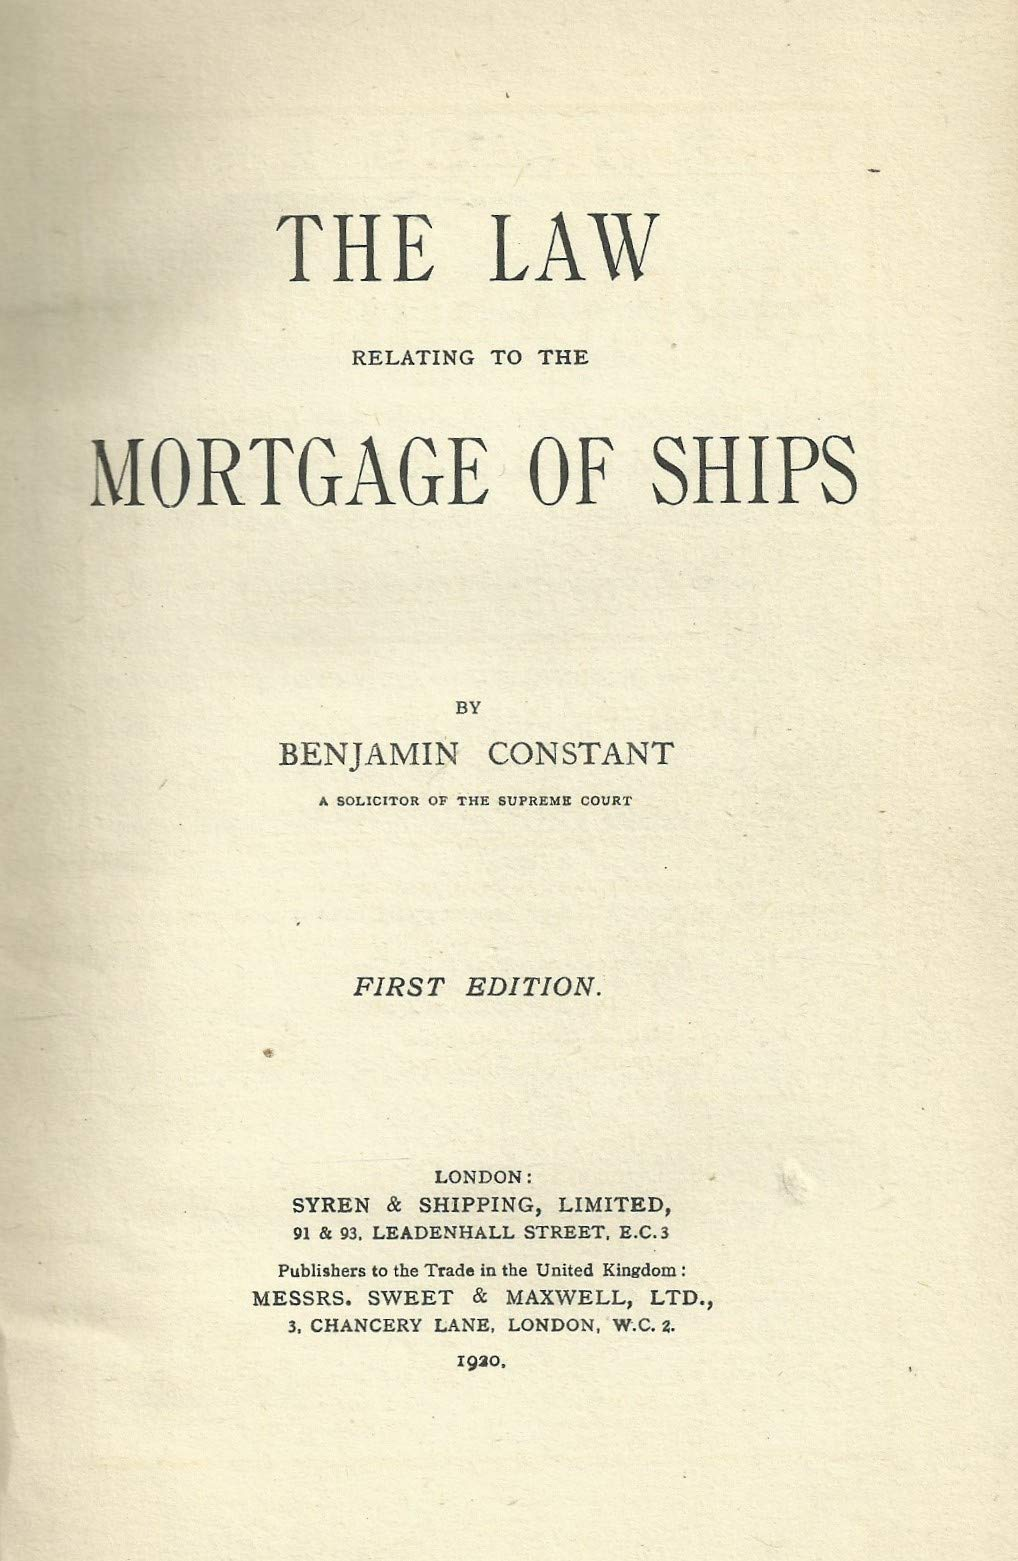 The Law relating to the Mortgage of Ships